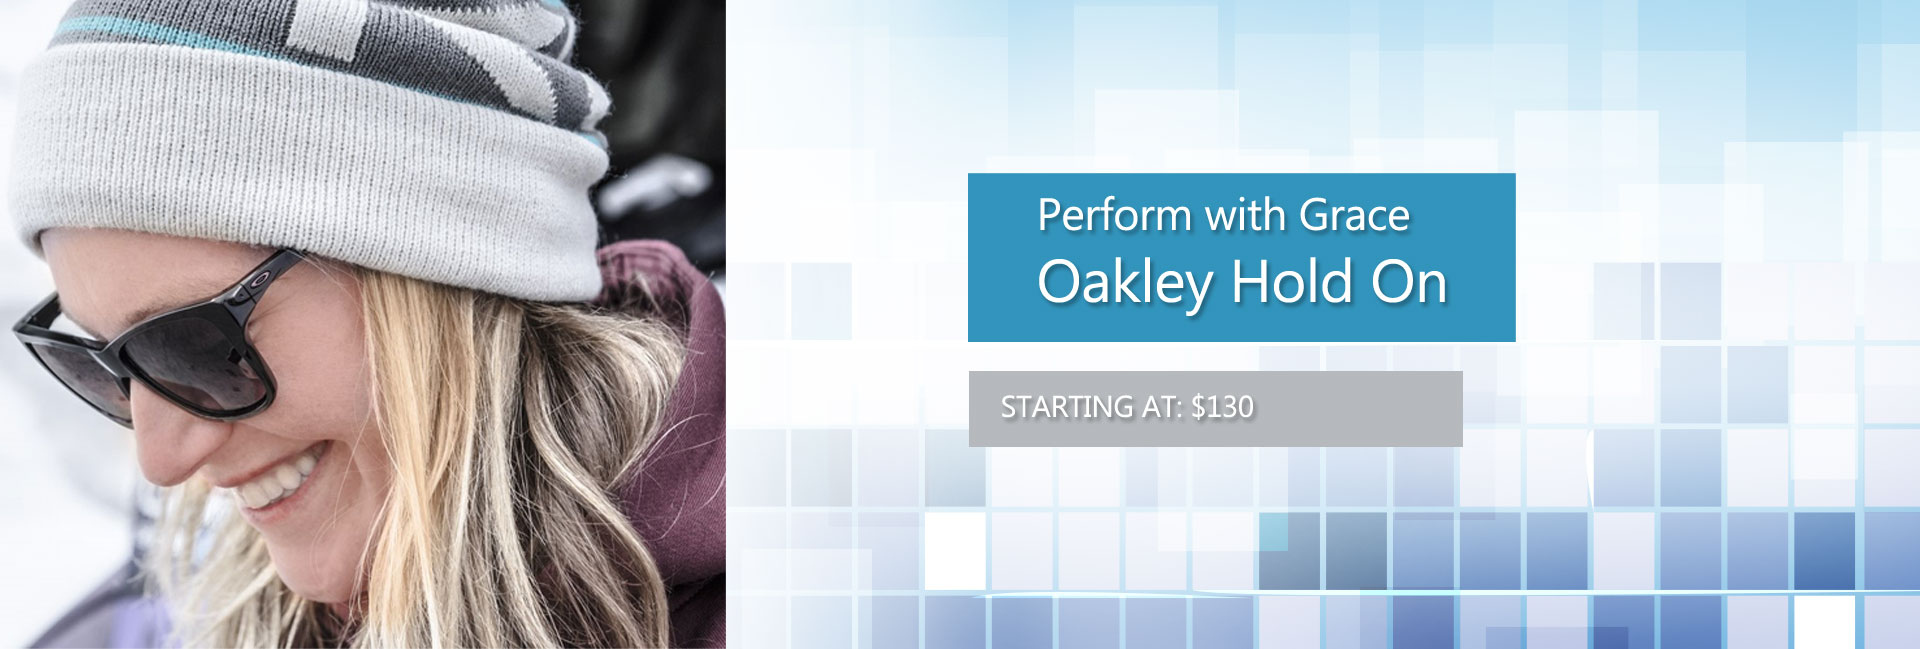 Oakley-Hold-On1